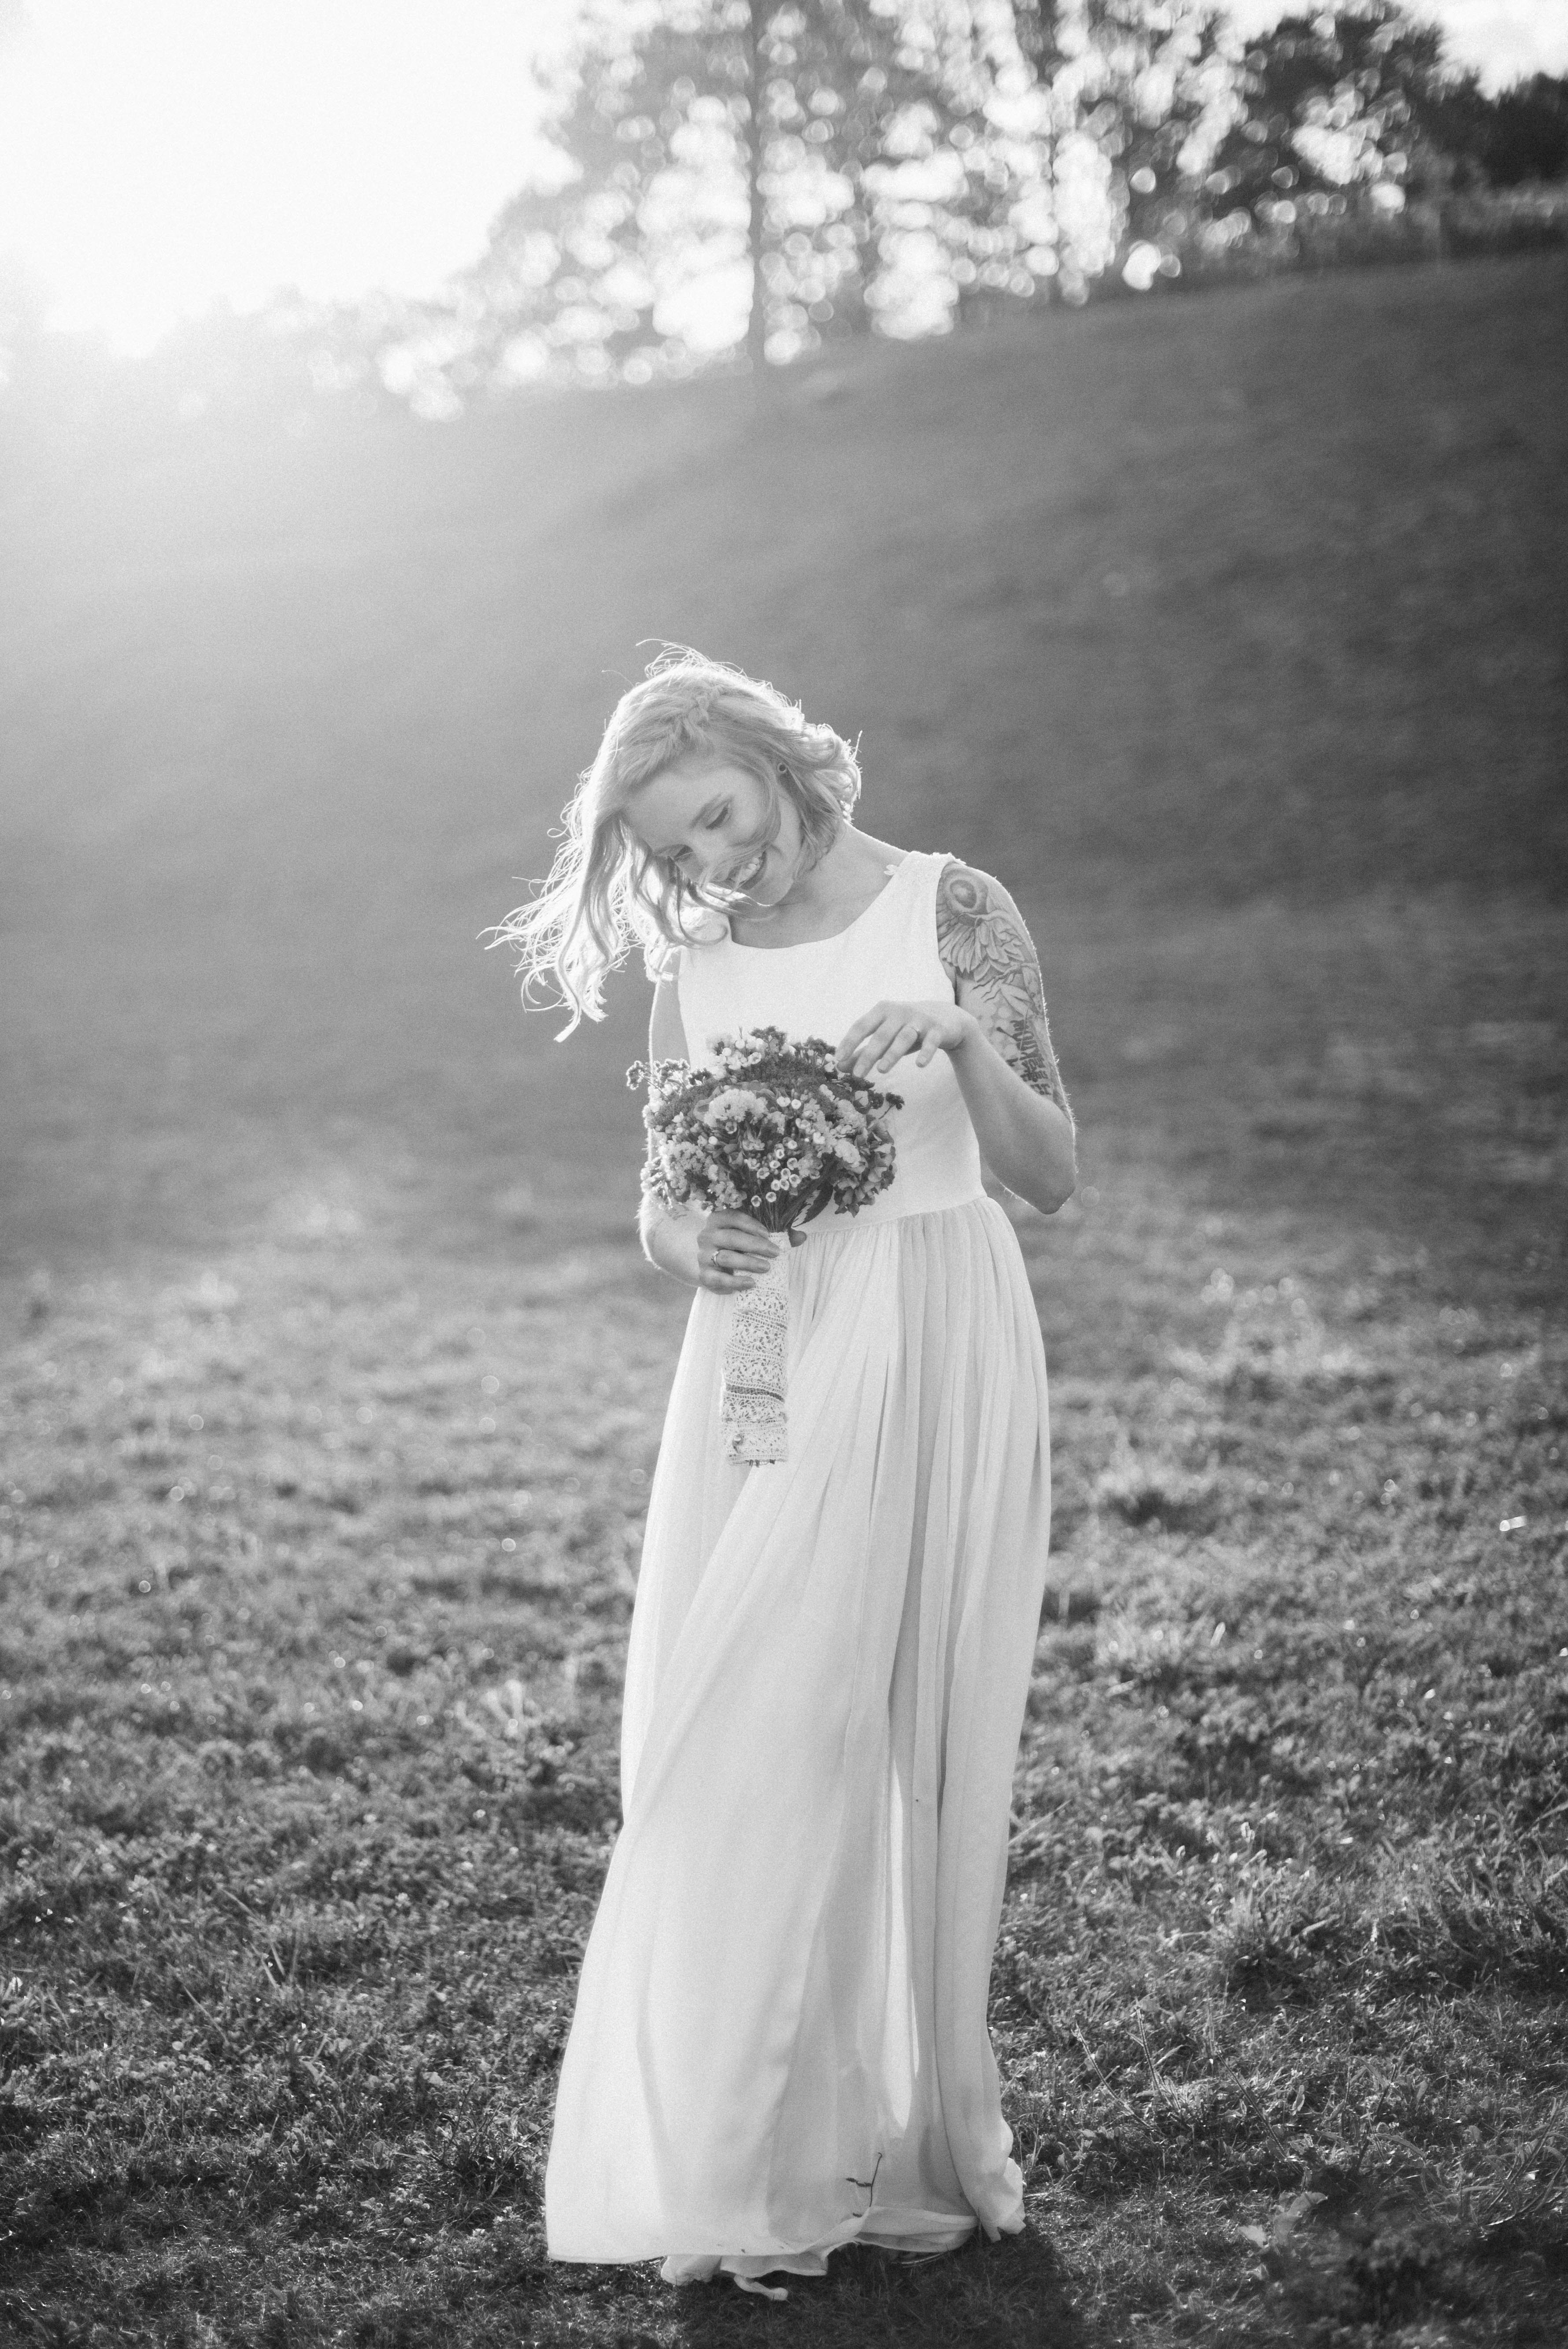 Yosemite Park Wedding | Neža Reisner - Wedding Photographer